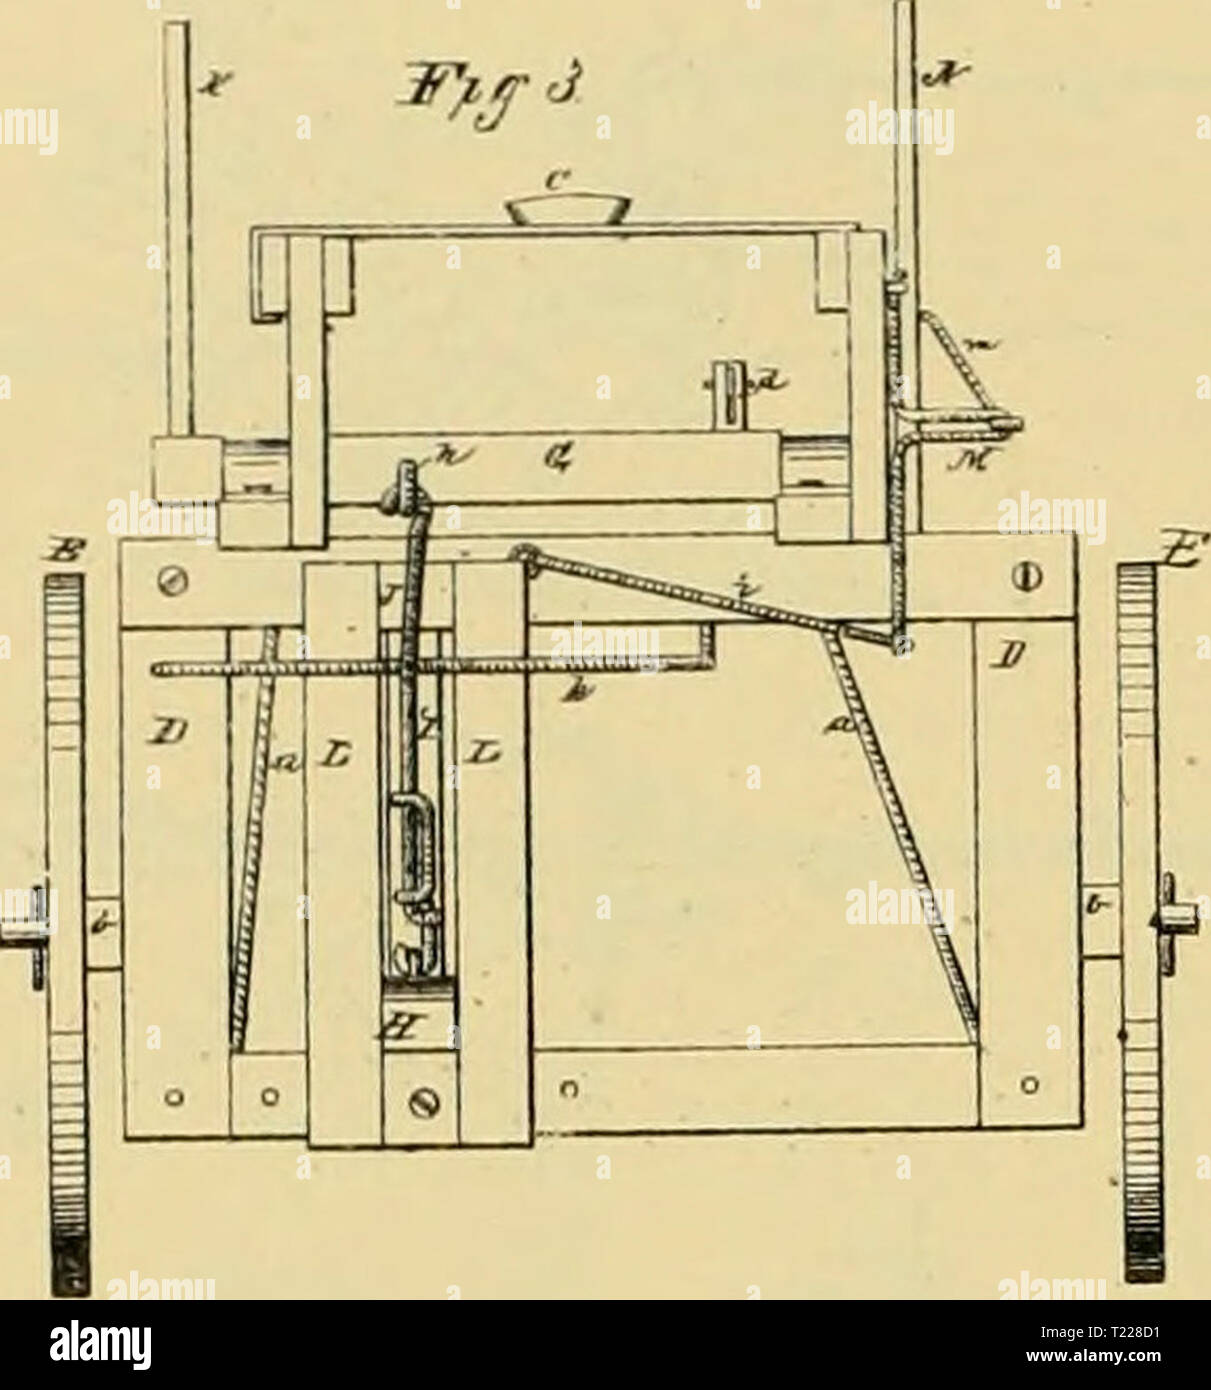 Archive image from page 897 of Digest of agricultural implements, patented Digest of agricultural implements, patented in the United States from A.D. 1789 to July 1881 ..  digestofagricult02alle Year: 1886  PLOWS-WHEEL OR SULKY. B. E. COlVin & I. E. JOBHSON. Plows 185 297. Pilenled D«c. 12. IB76.    JJS.i S. p. LANOSrORt i W. N STEOtl. SULKY ATTACBHEST FOR PLOWS Ml 185.338 P.iLitl Die. Stock Photo